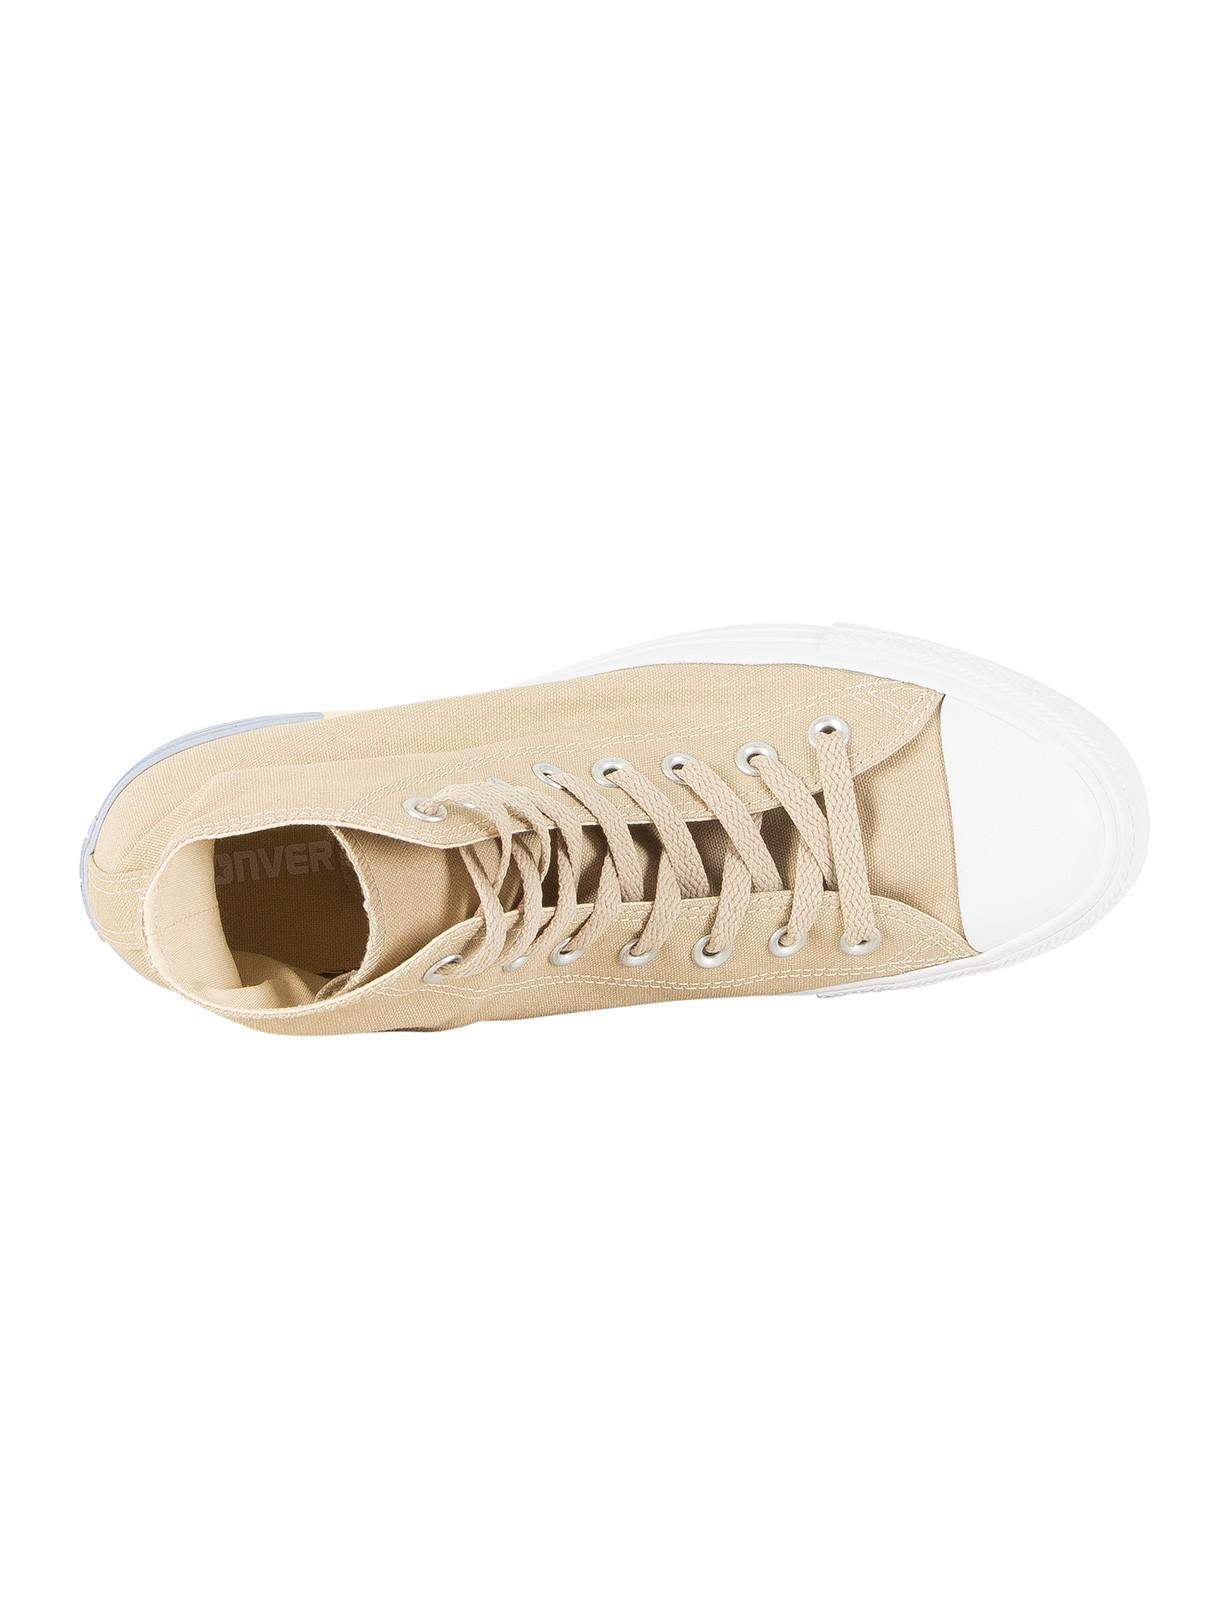 Converse Canvas Vintage Khaki/light Twine Ct All Star Hi Trainers in Natural for Men